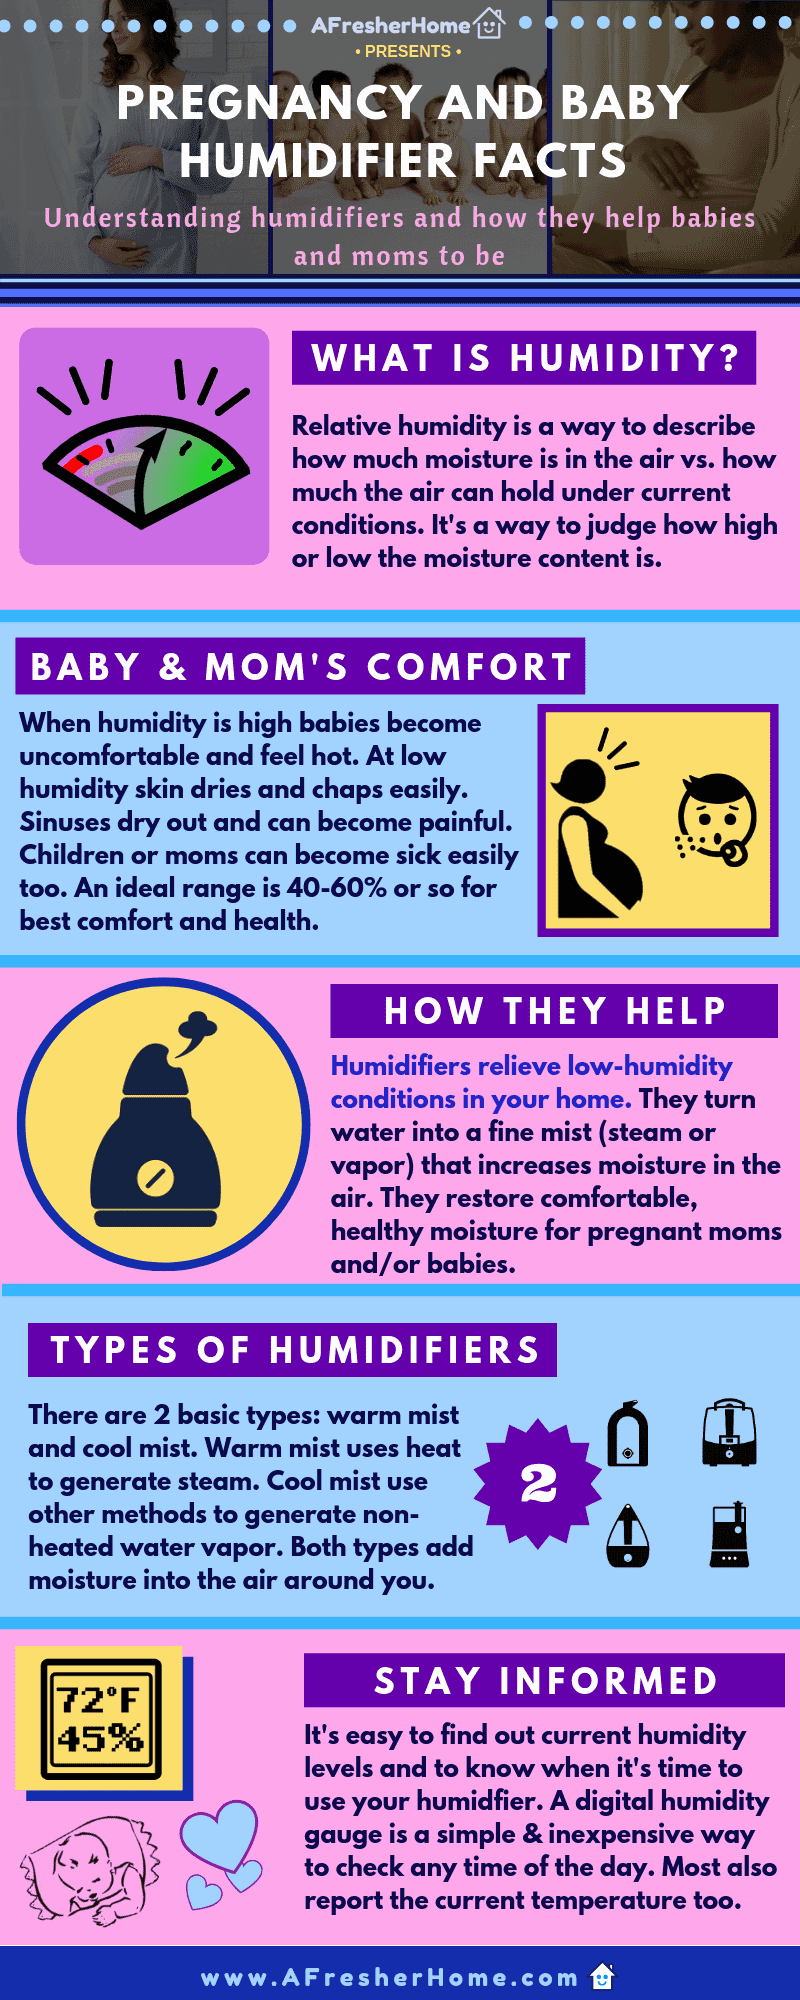 Infographic with pregnancy and baby humidifier facts and info